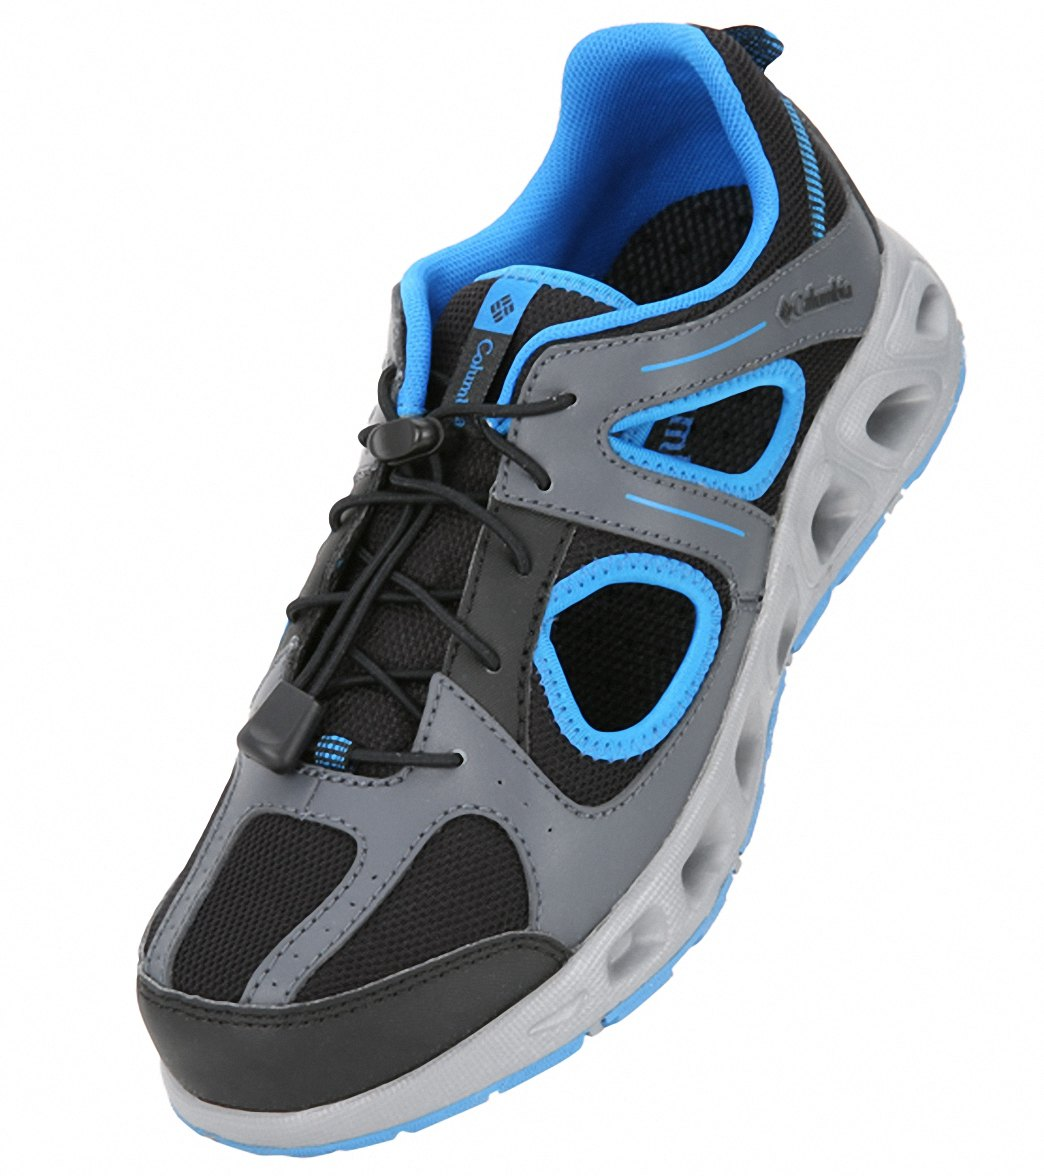 22b53e933e53 Columbia Youth Supervent Water Shoe at SwimOutlet.com - Free Shipping